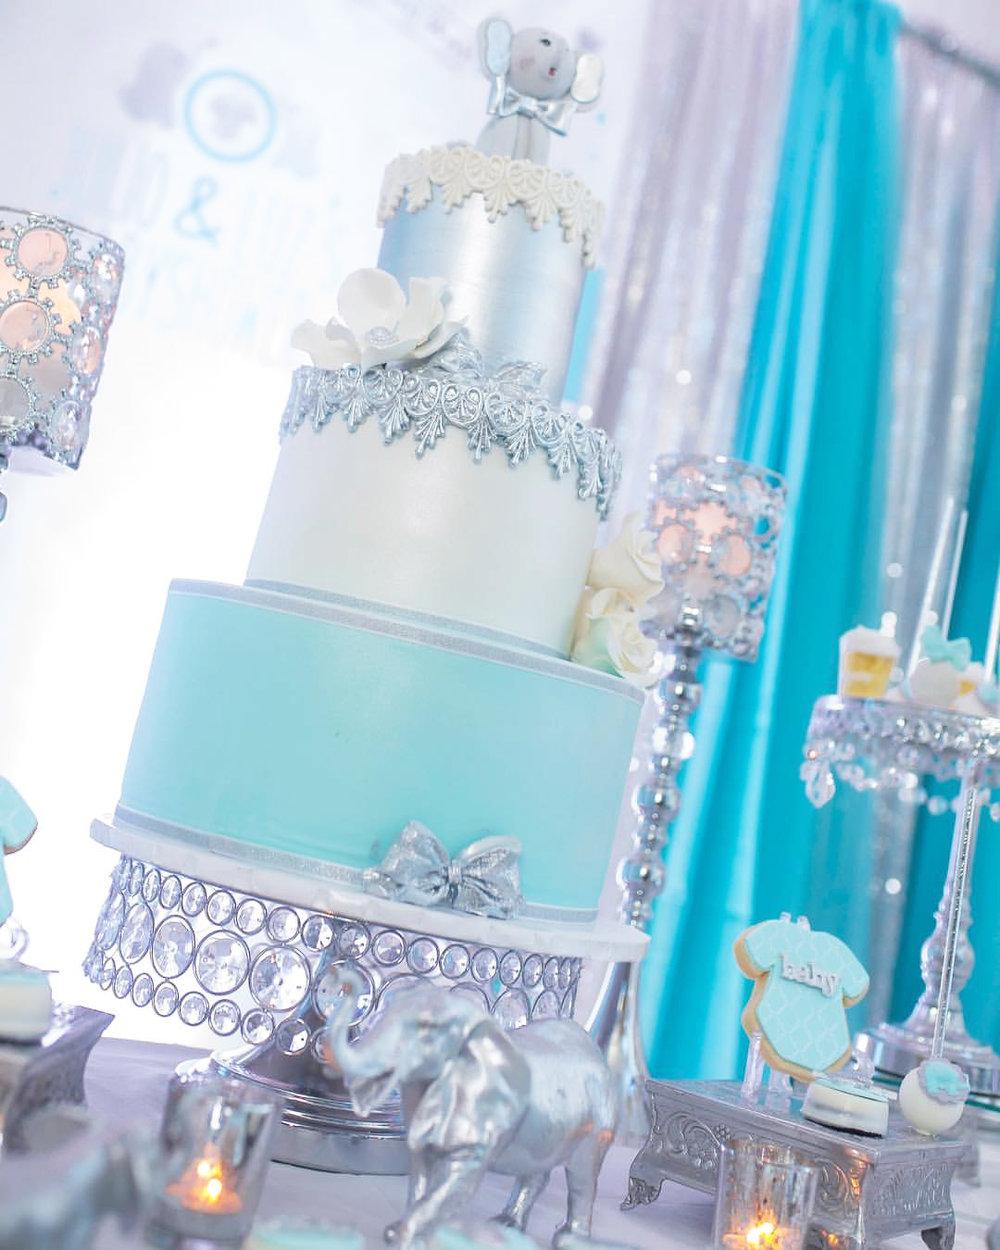 shiny silver bling cake stand opulent treasures.jpg